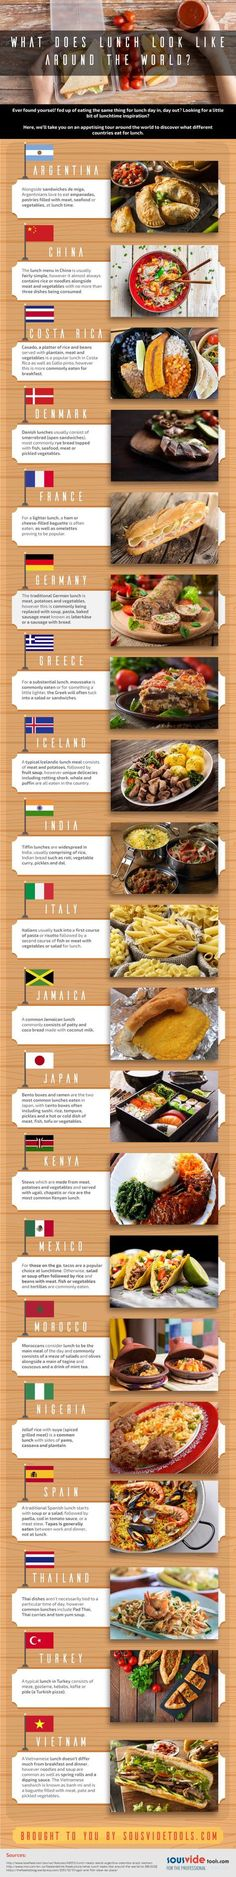 what does lunch look like around the world infographic